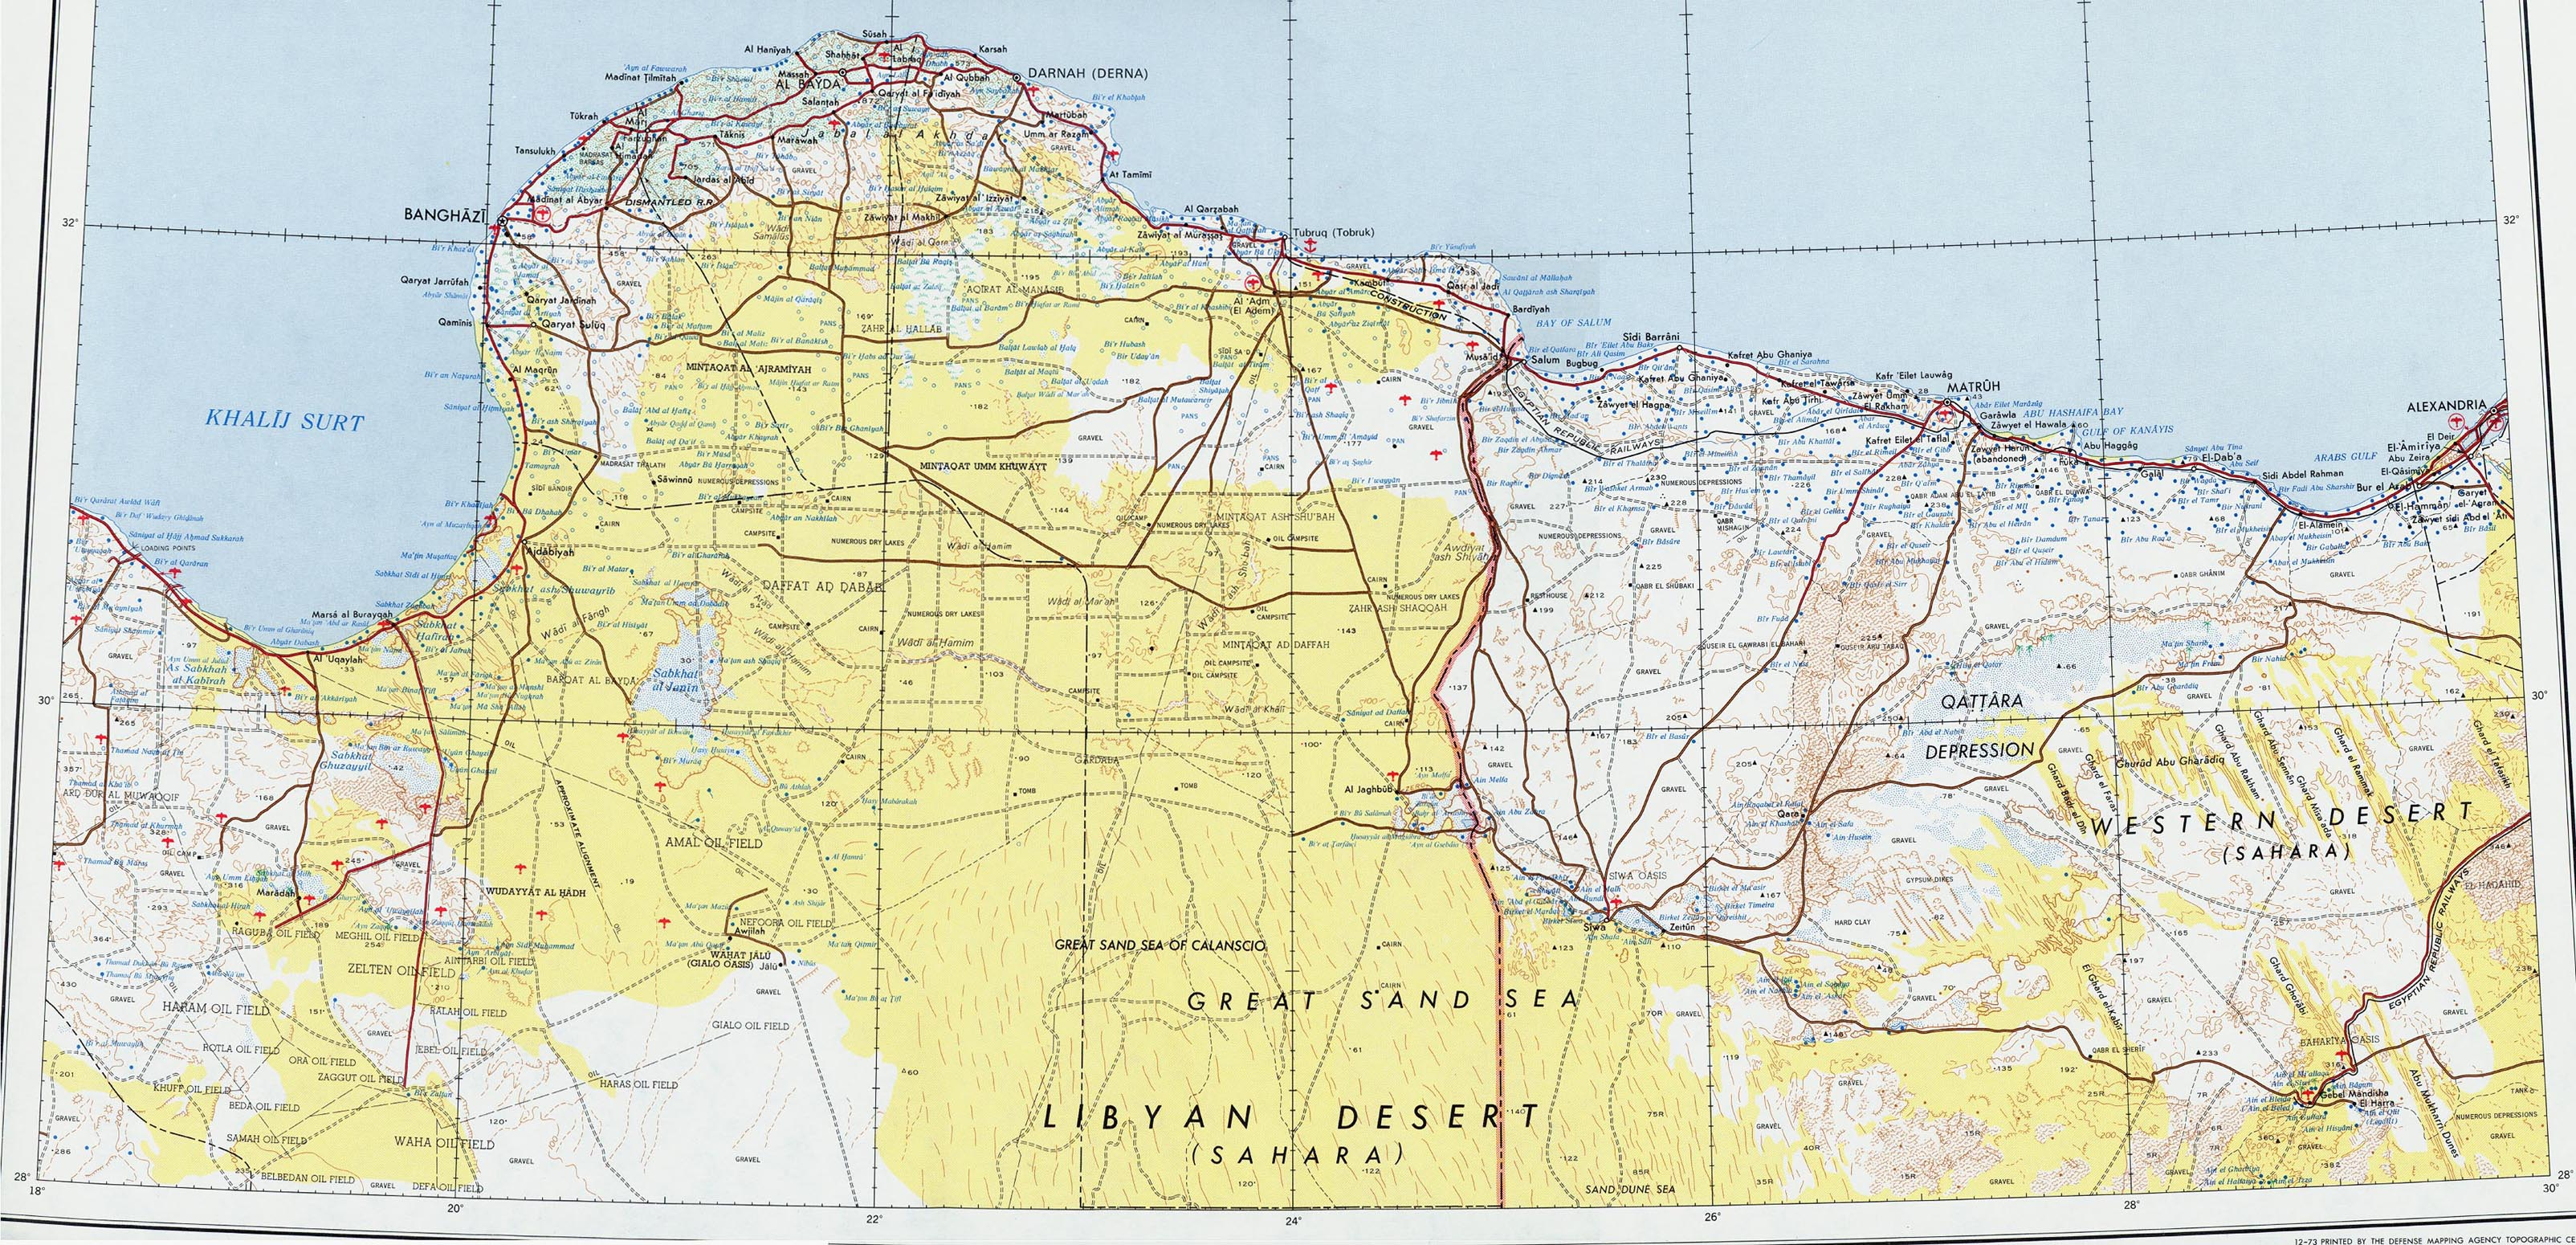 Libya Maps Perry Castaneda Map Collection Ut Library Online - Us-map-key